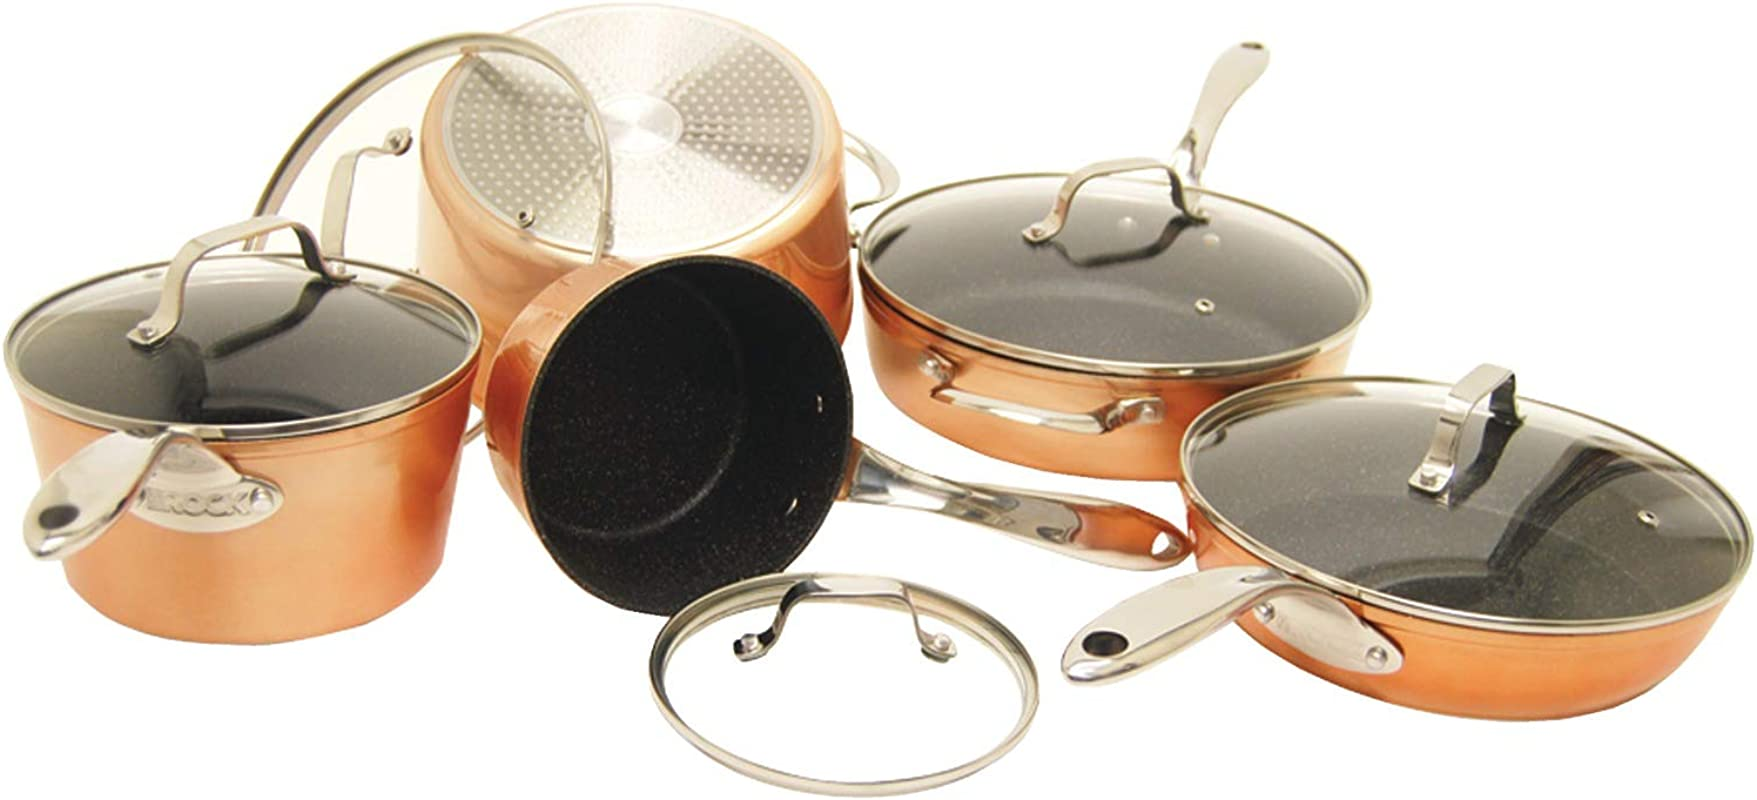 THE ROCK By Starfrit 030910 001 0000 10 Piece Cookware Set Copper